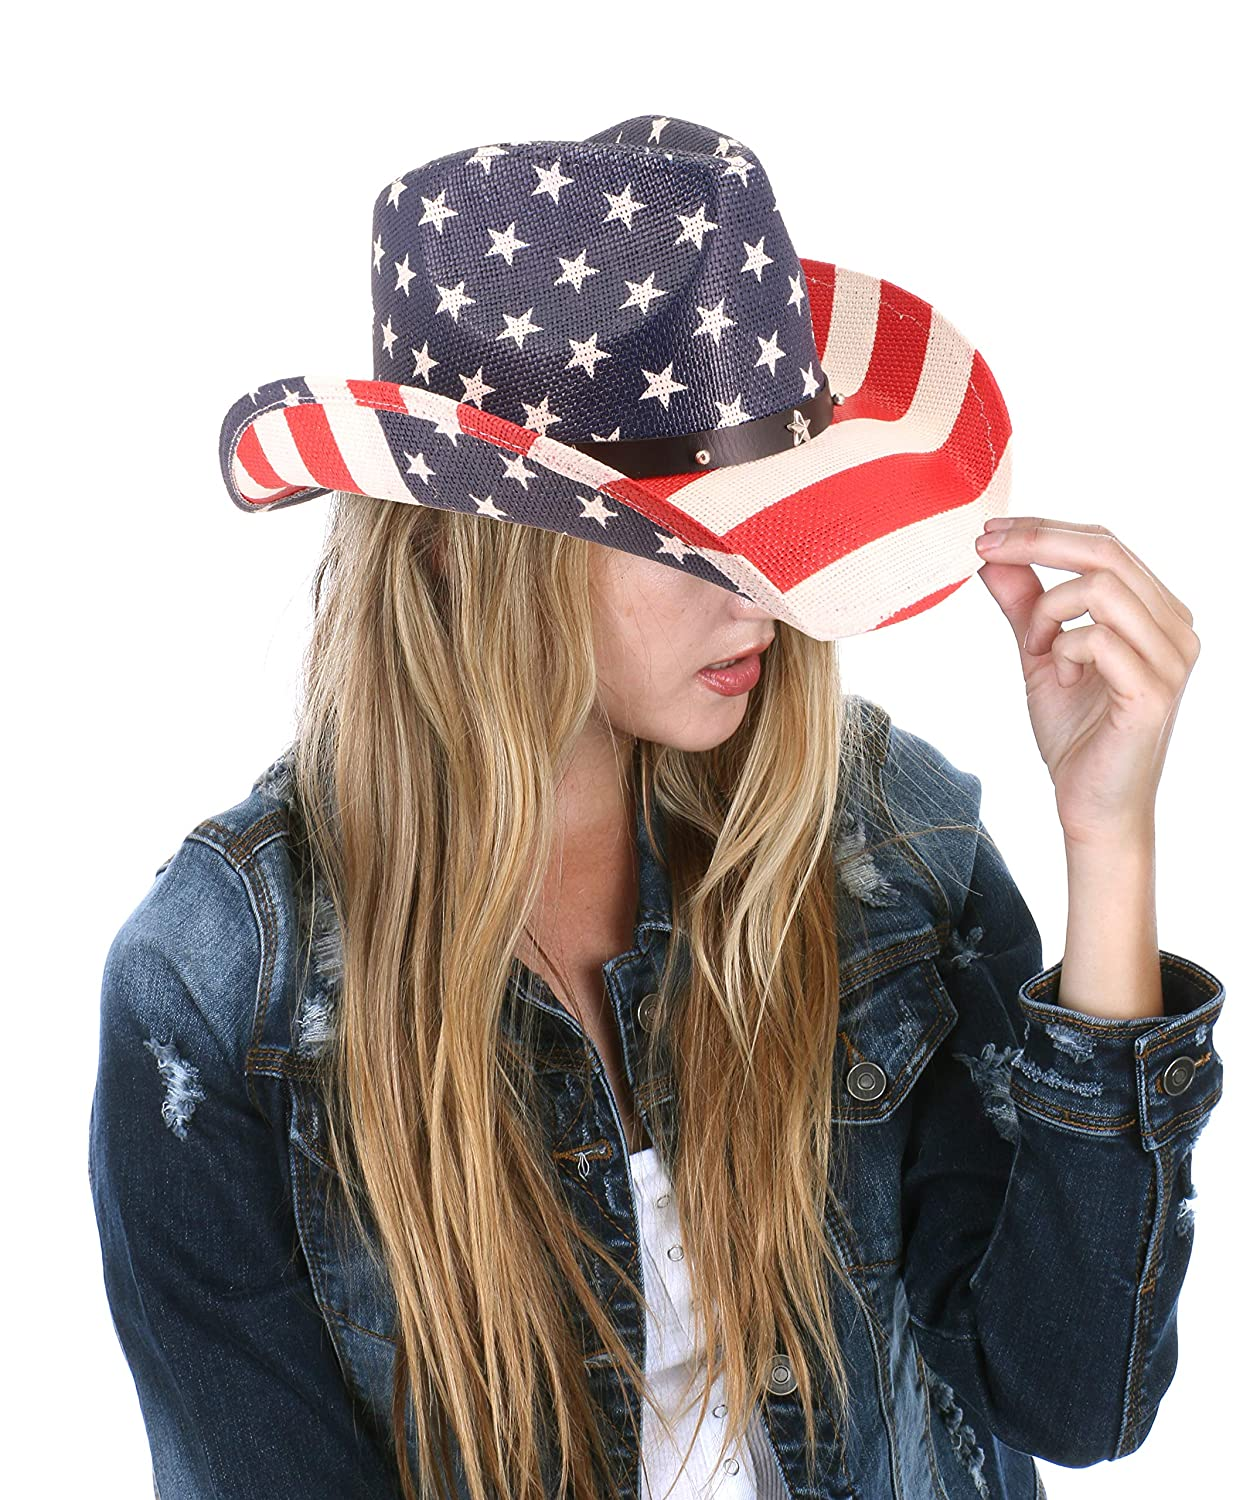 RufnTop Men s   Women s Western Vintage Style Cowboy Cowgirl Straw Hat w  Band Décor(American Flag Cowboy 2) at Amazon Men s Clothing store  295d8925b3b